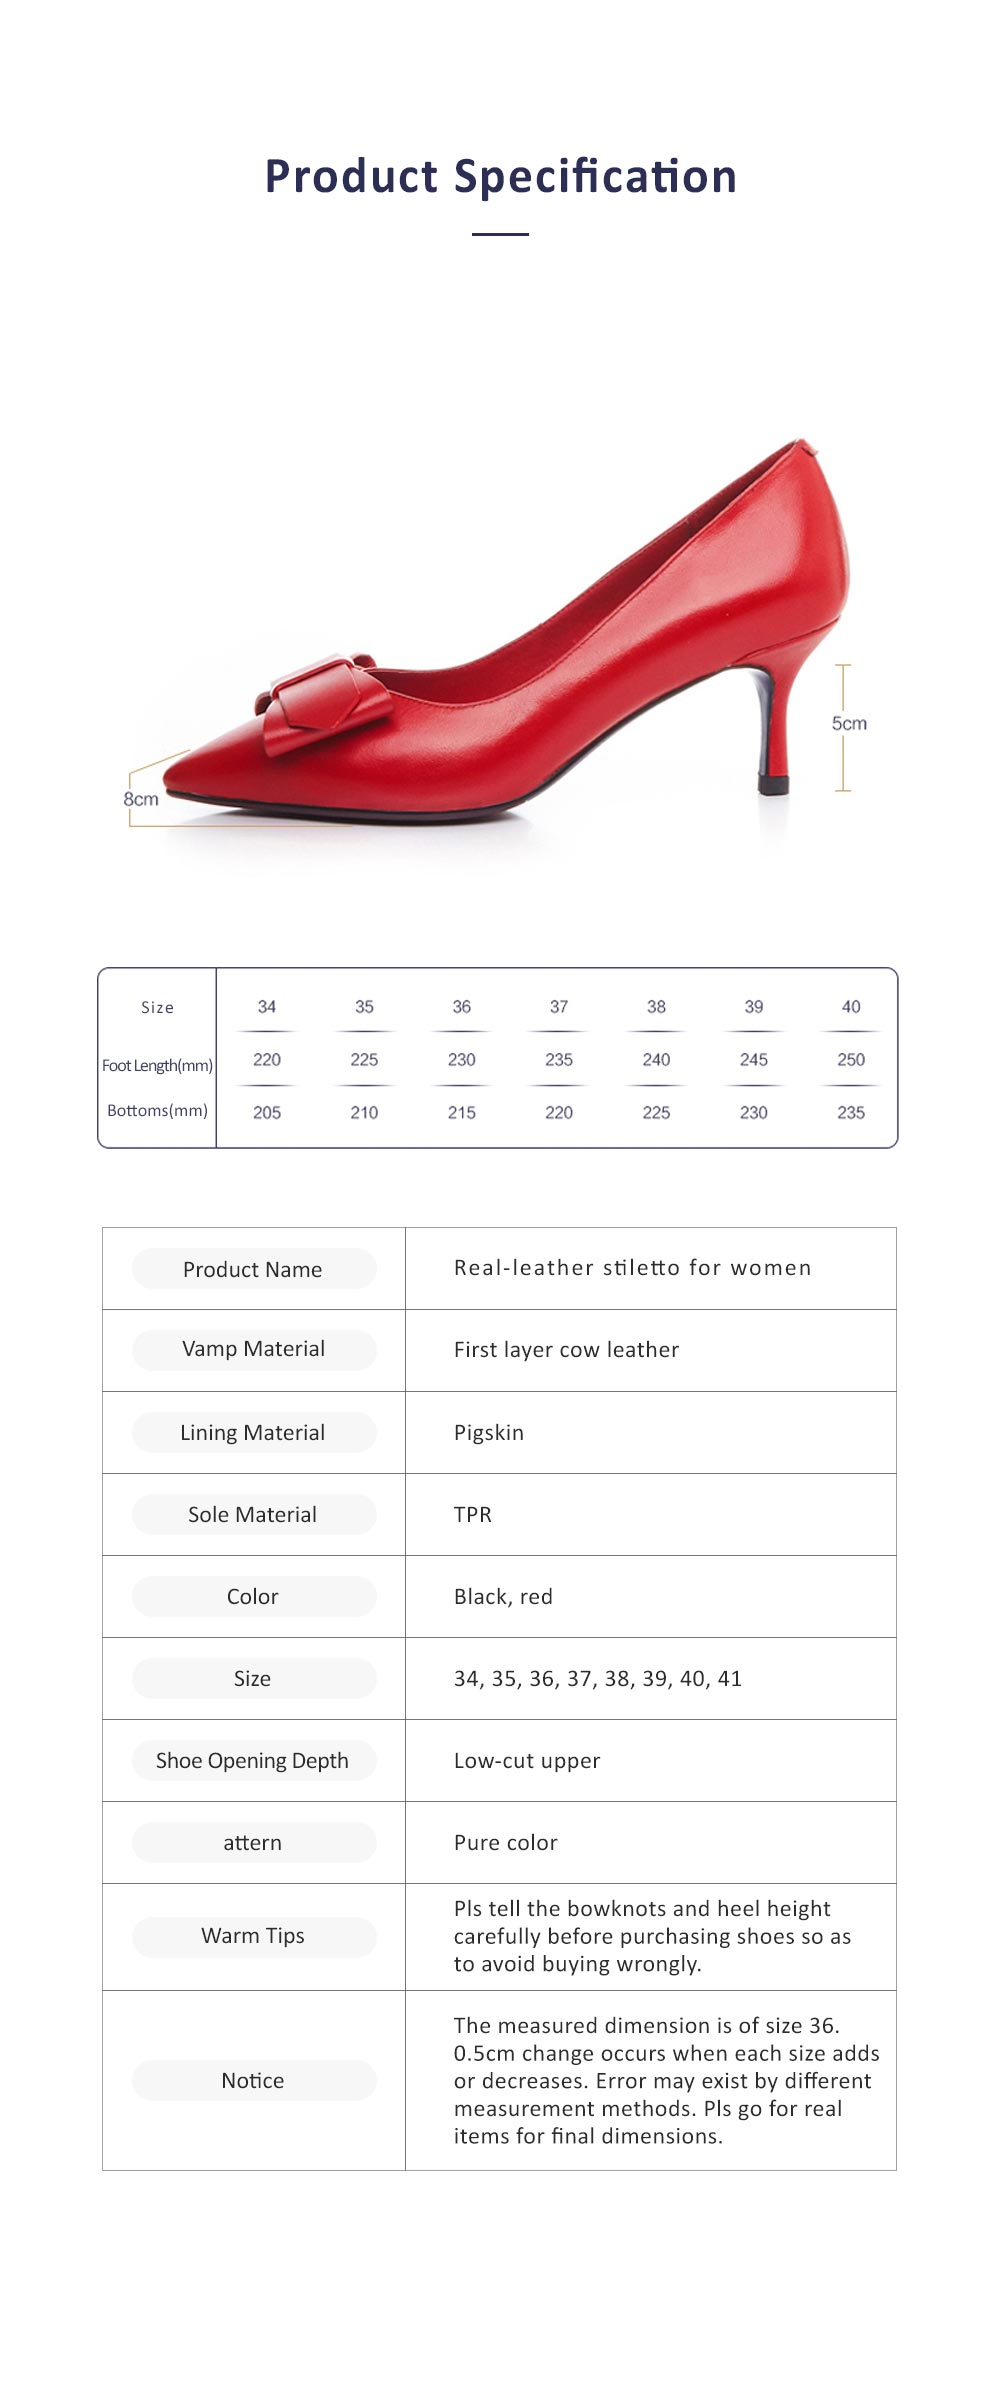 Genuine Leather Stilettos with Low-cut Uppers for Women, 2019 New Korean Style Moderate Kitten Heels Shoes for Wedding, Business, Party 6